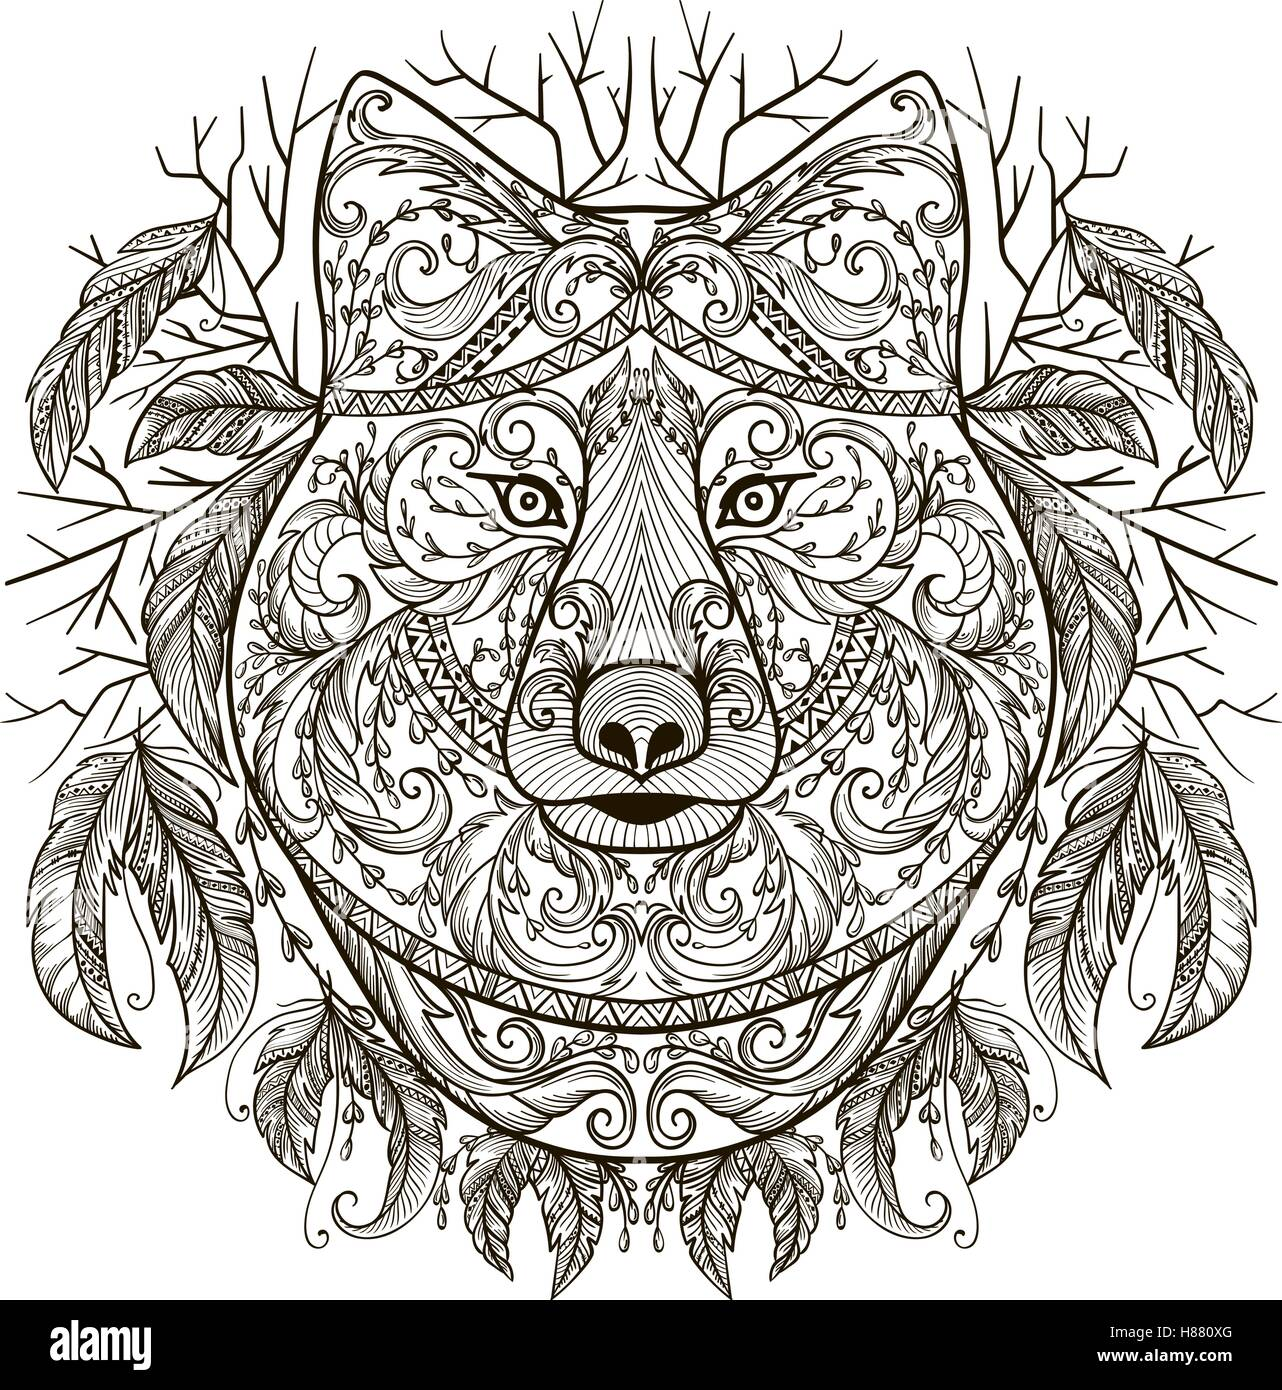 c0f65d6bd Wolf head with tribal aztec ornament in boho style. Tattoo art. Vintage  hand drawn